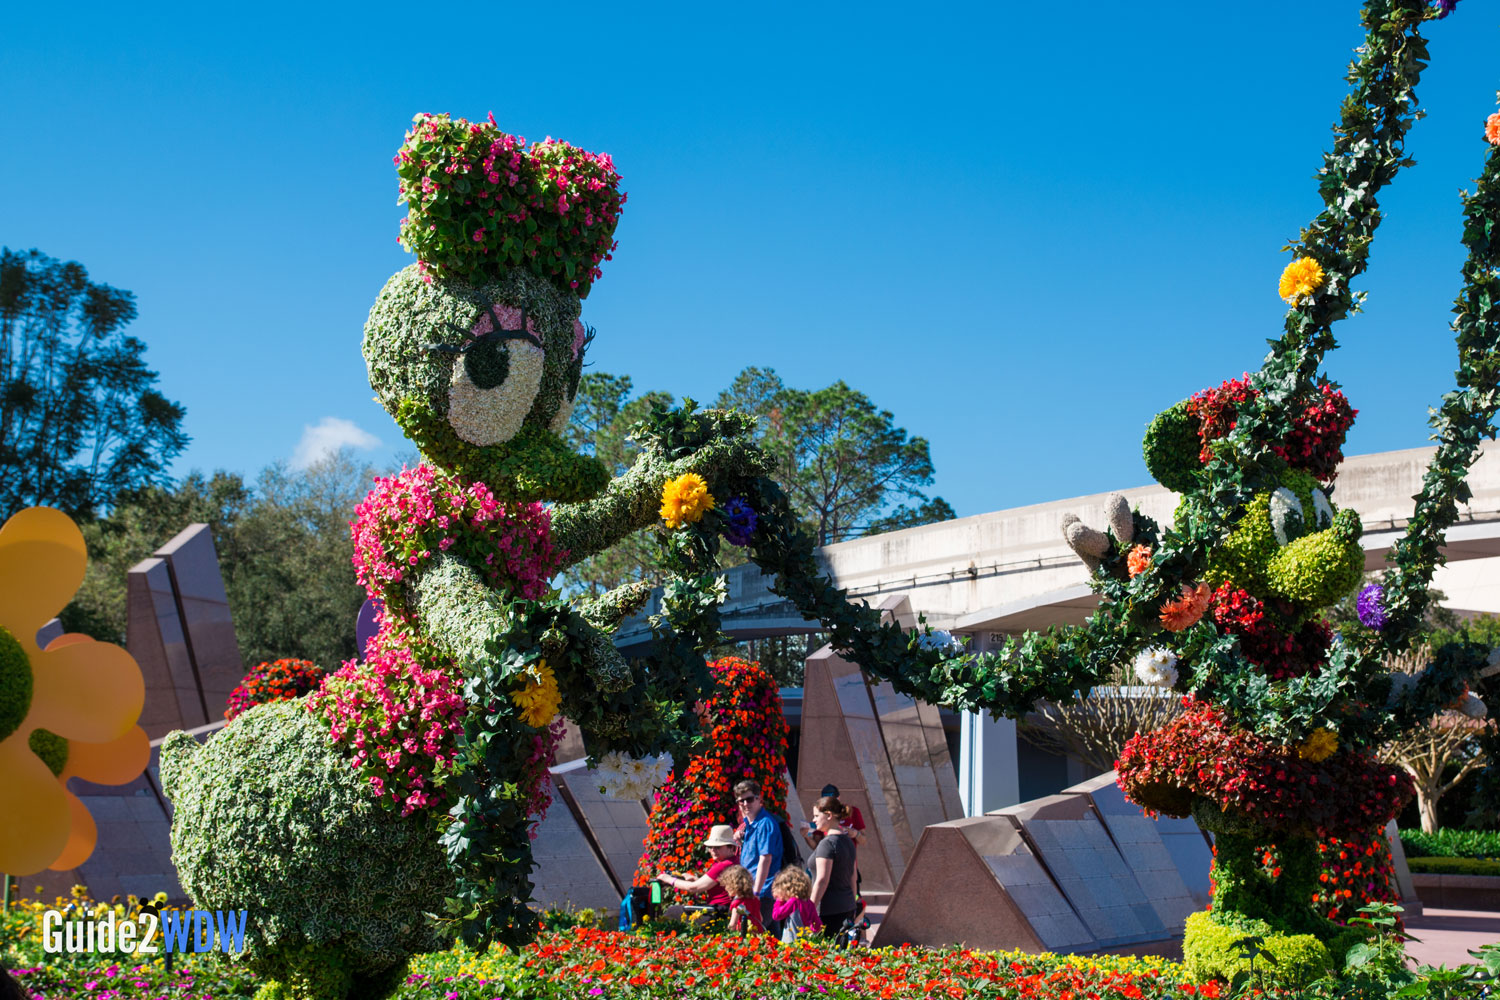 The topiaries of the 2017 Epcot Flower & Garden Festival